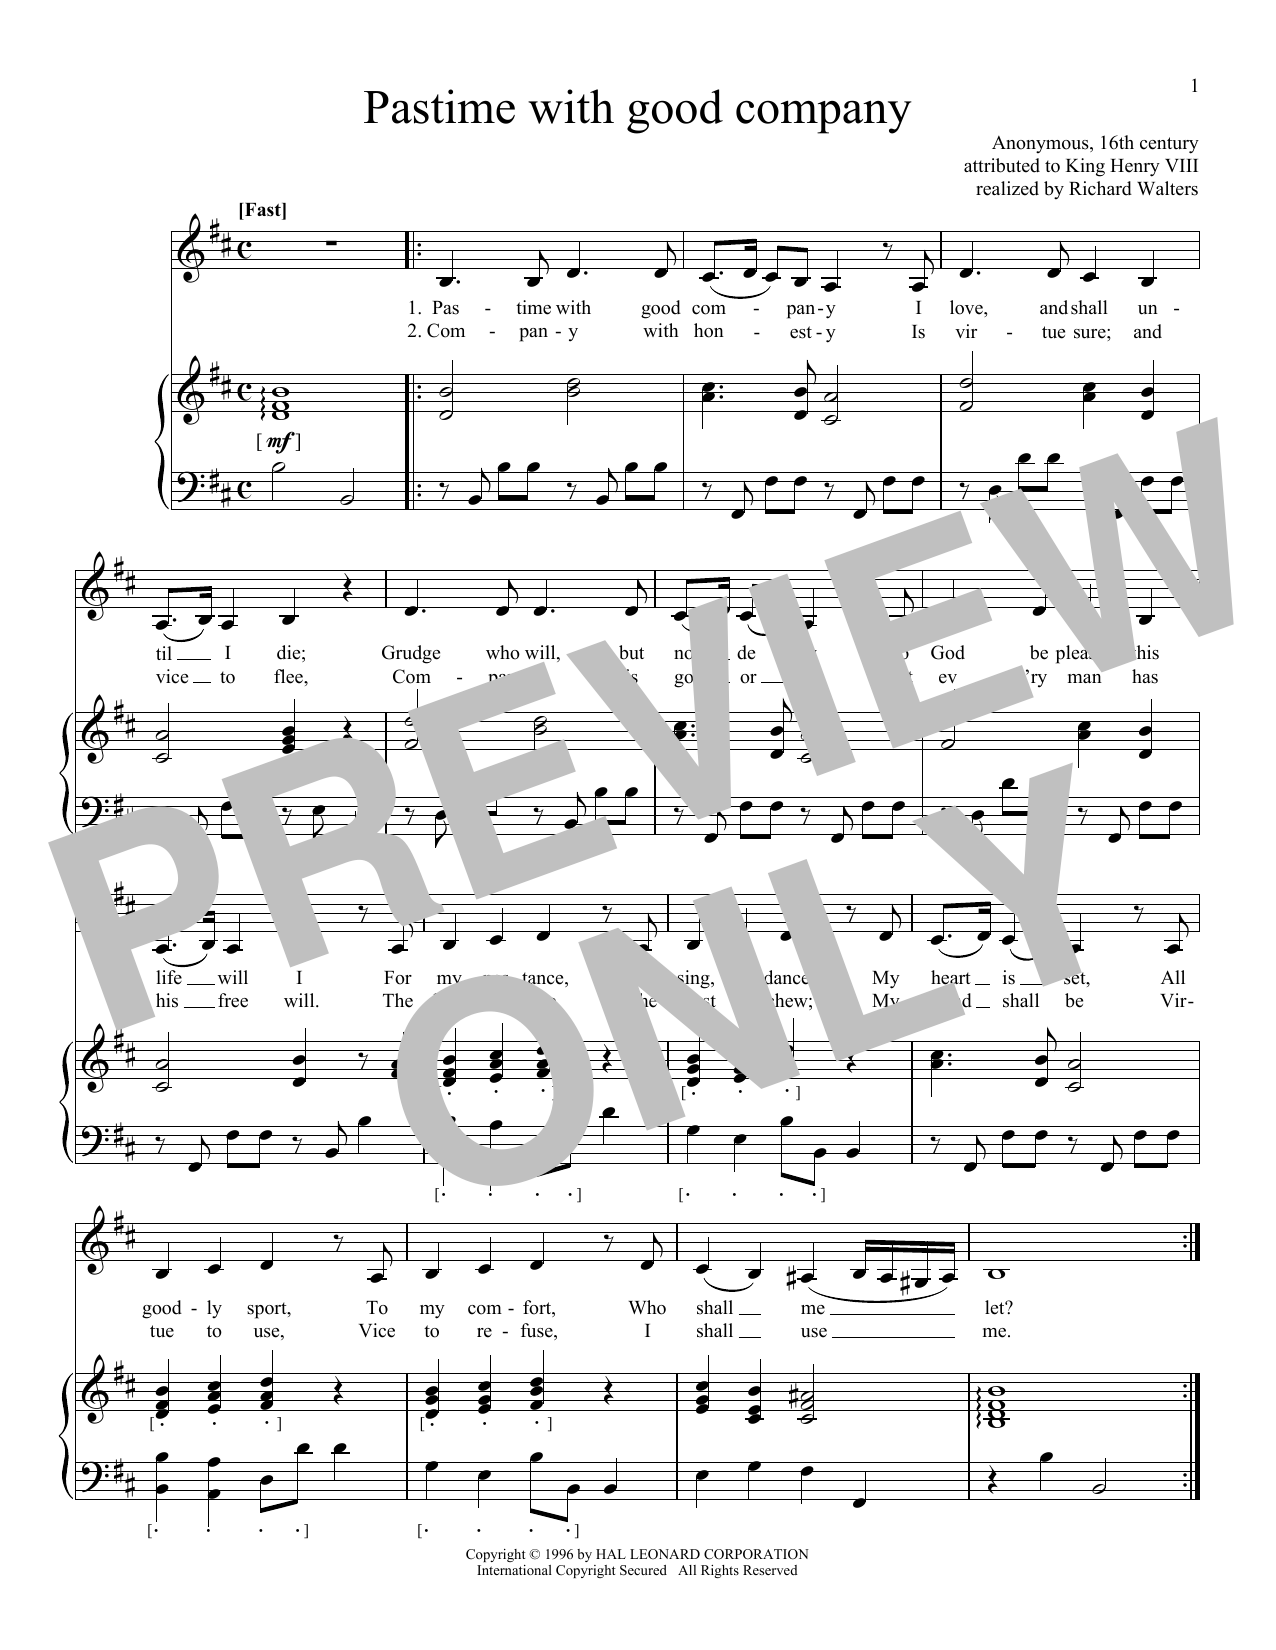 King Henry VIII Pastime With Good Company sheet music notes and chords. Download Printable PDF.